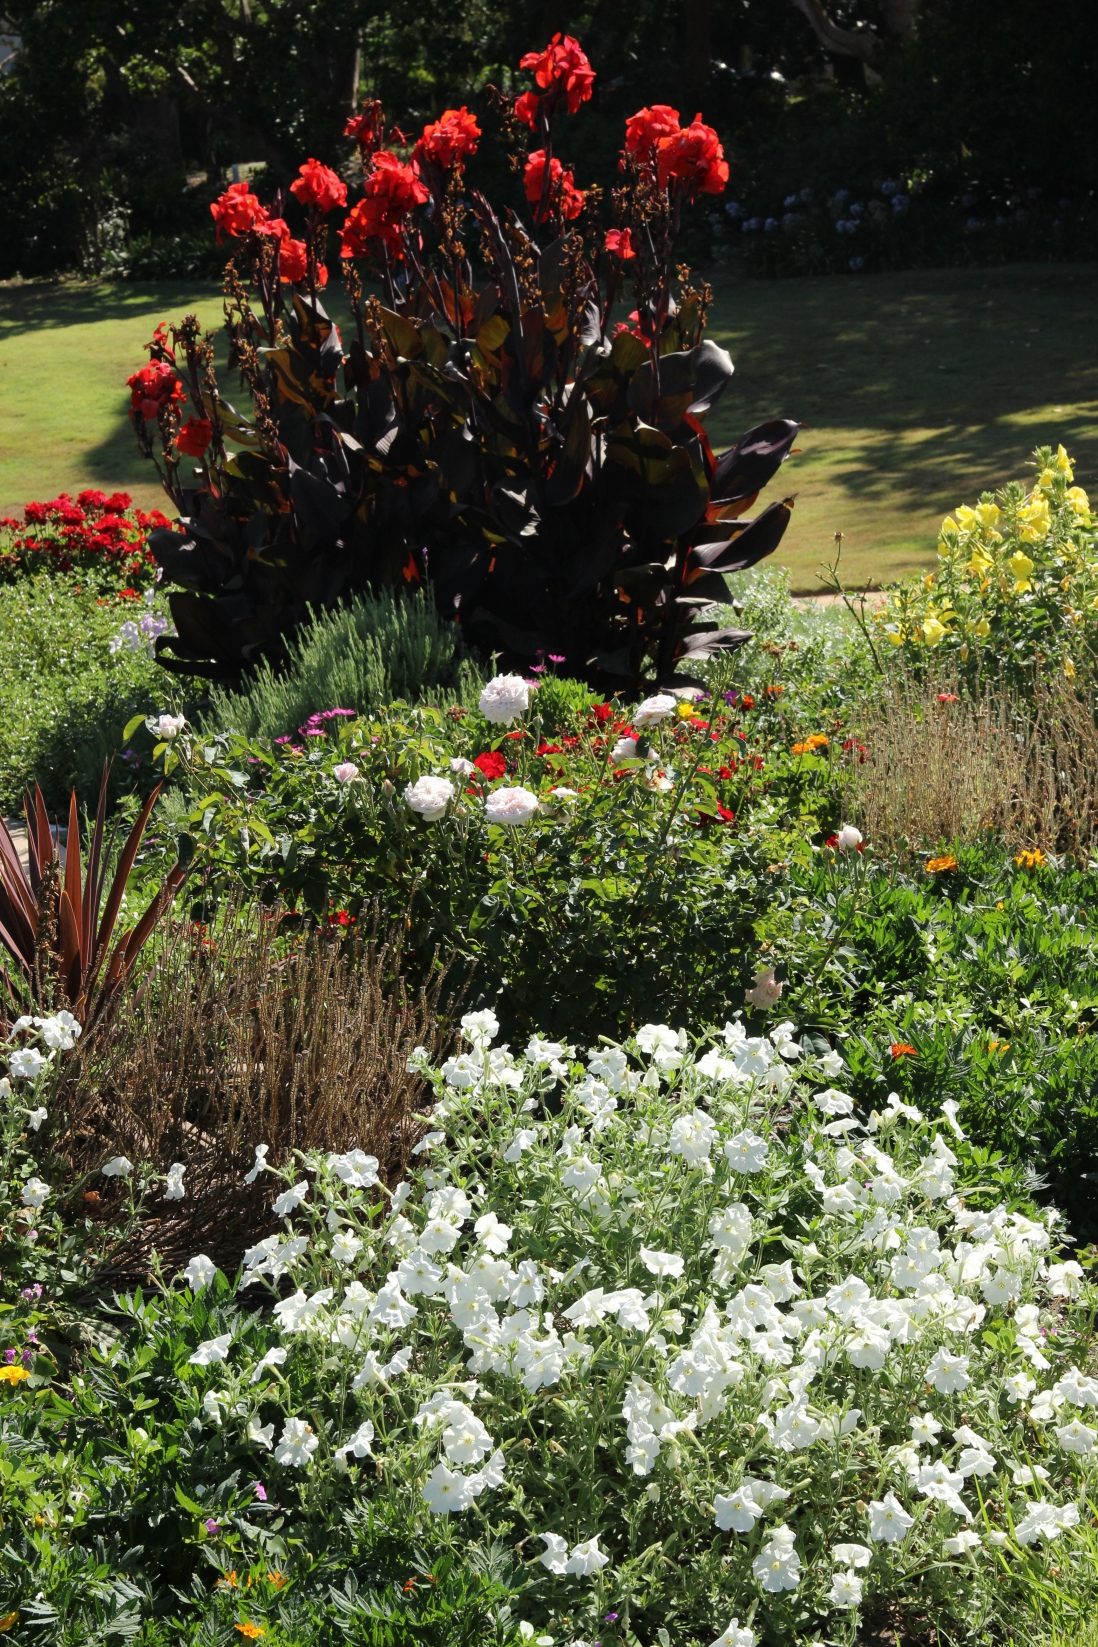 Vaucluse House summer bedding display in the Fountain Garden